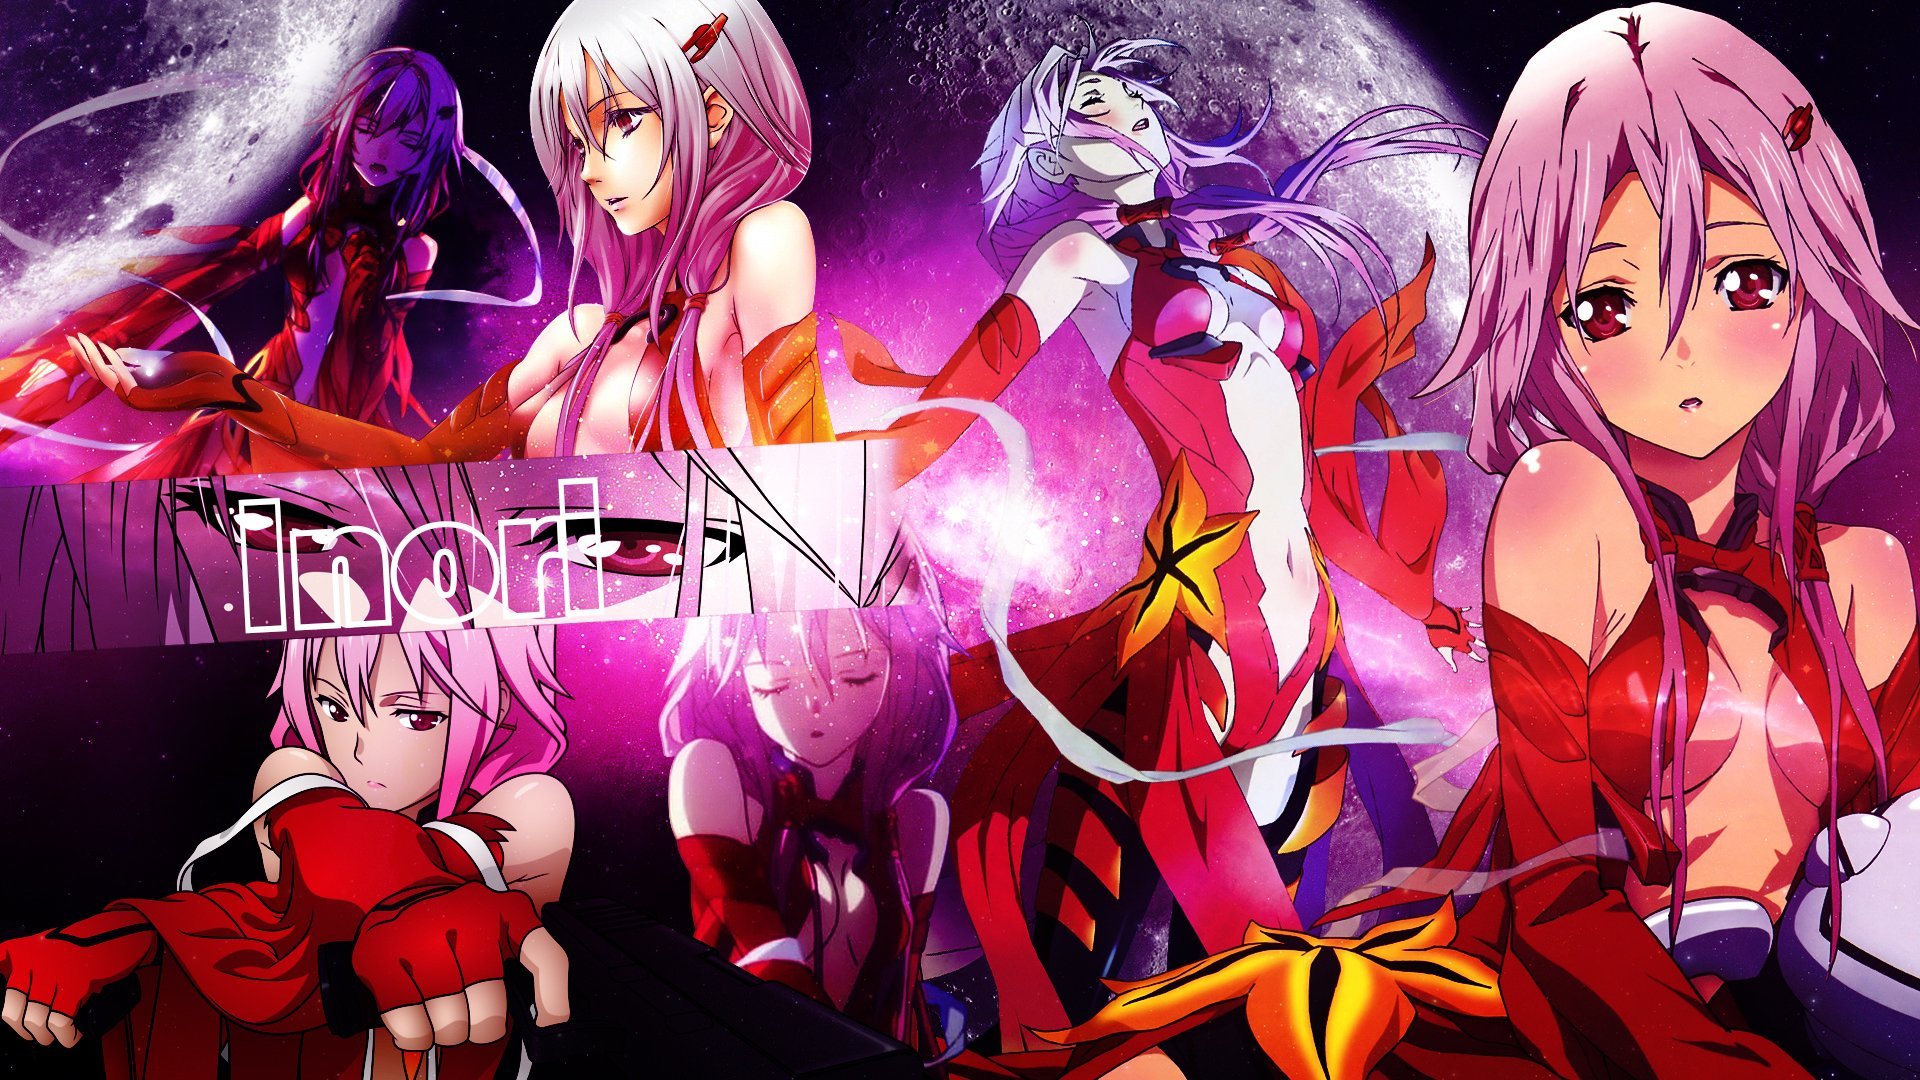 Blue Exorcist Wallpaper Hd Guilty Crown Hd Wallpaper Background Image 1920x1080